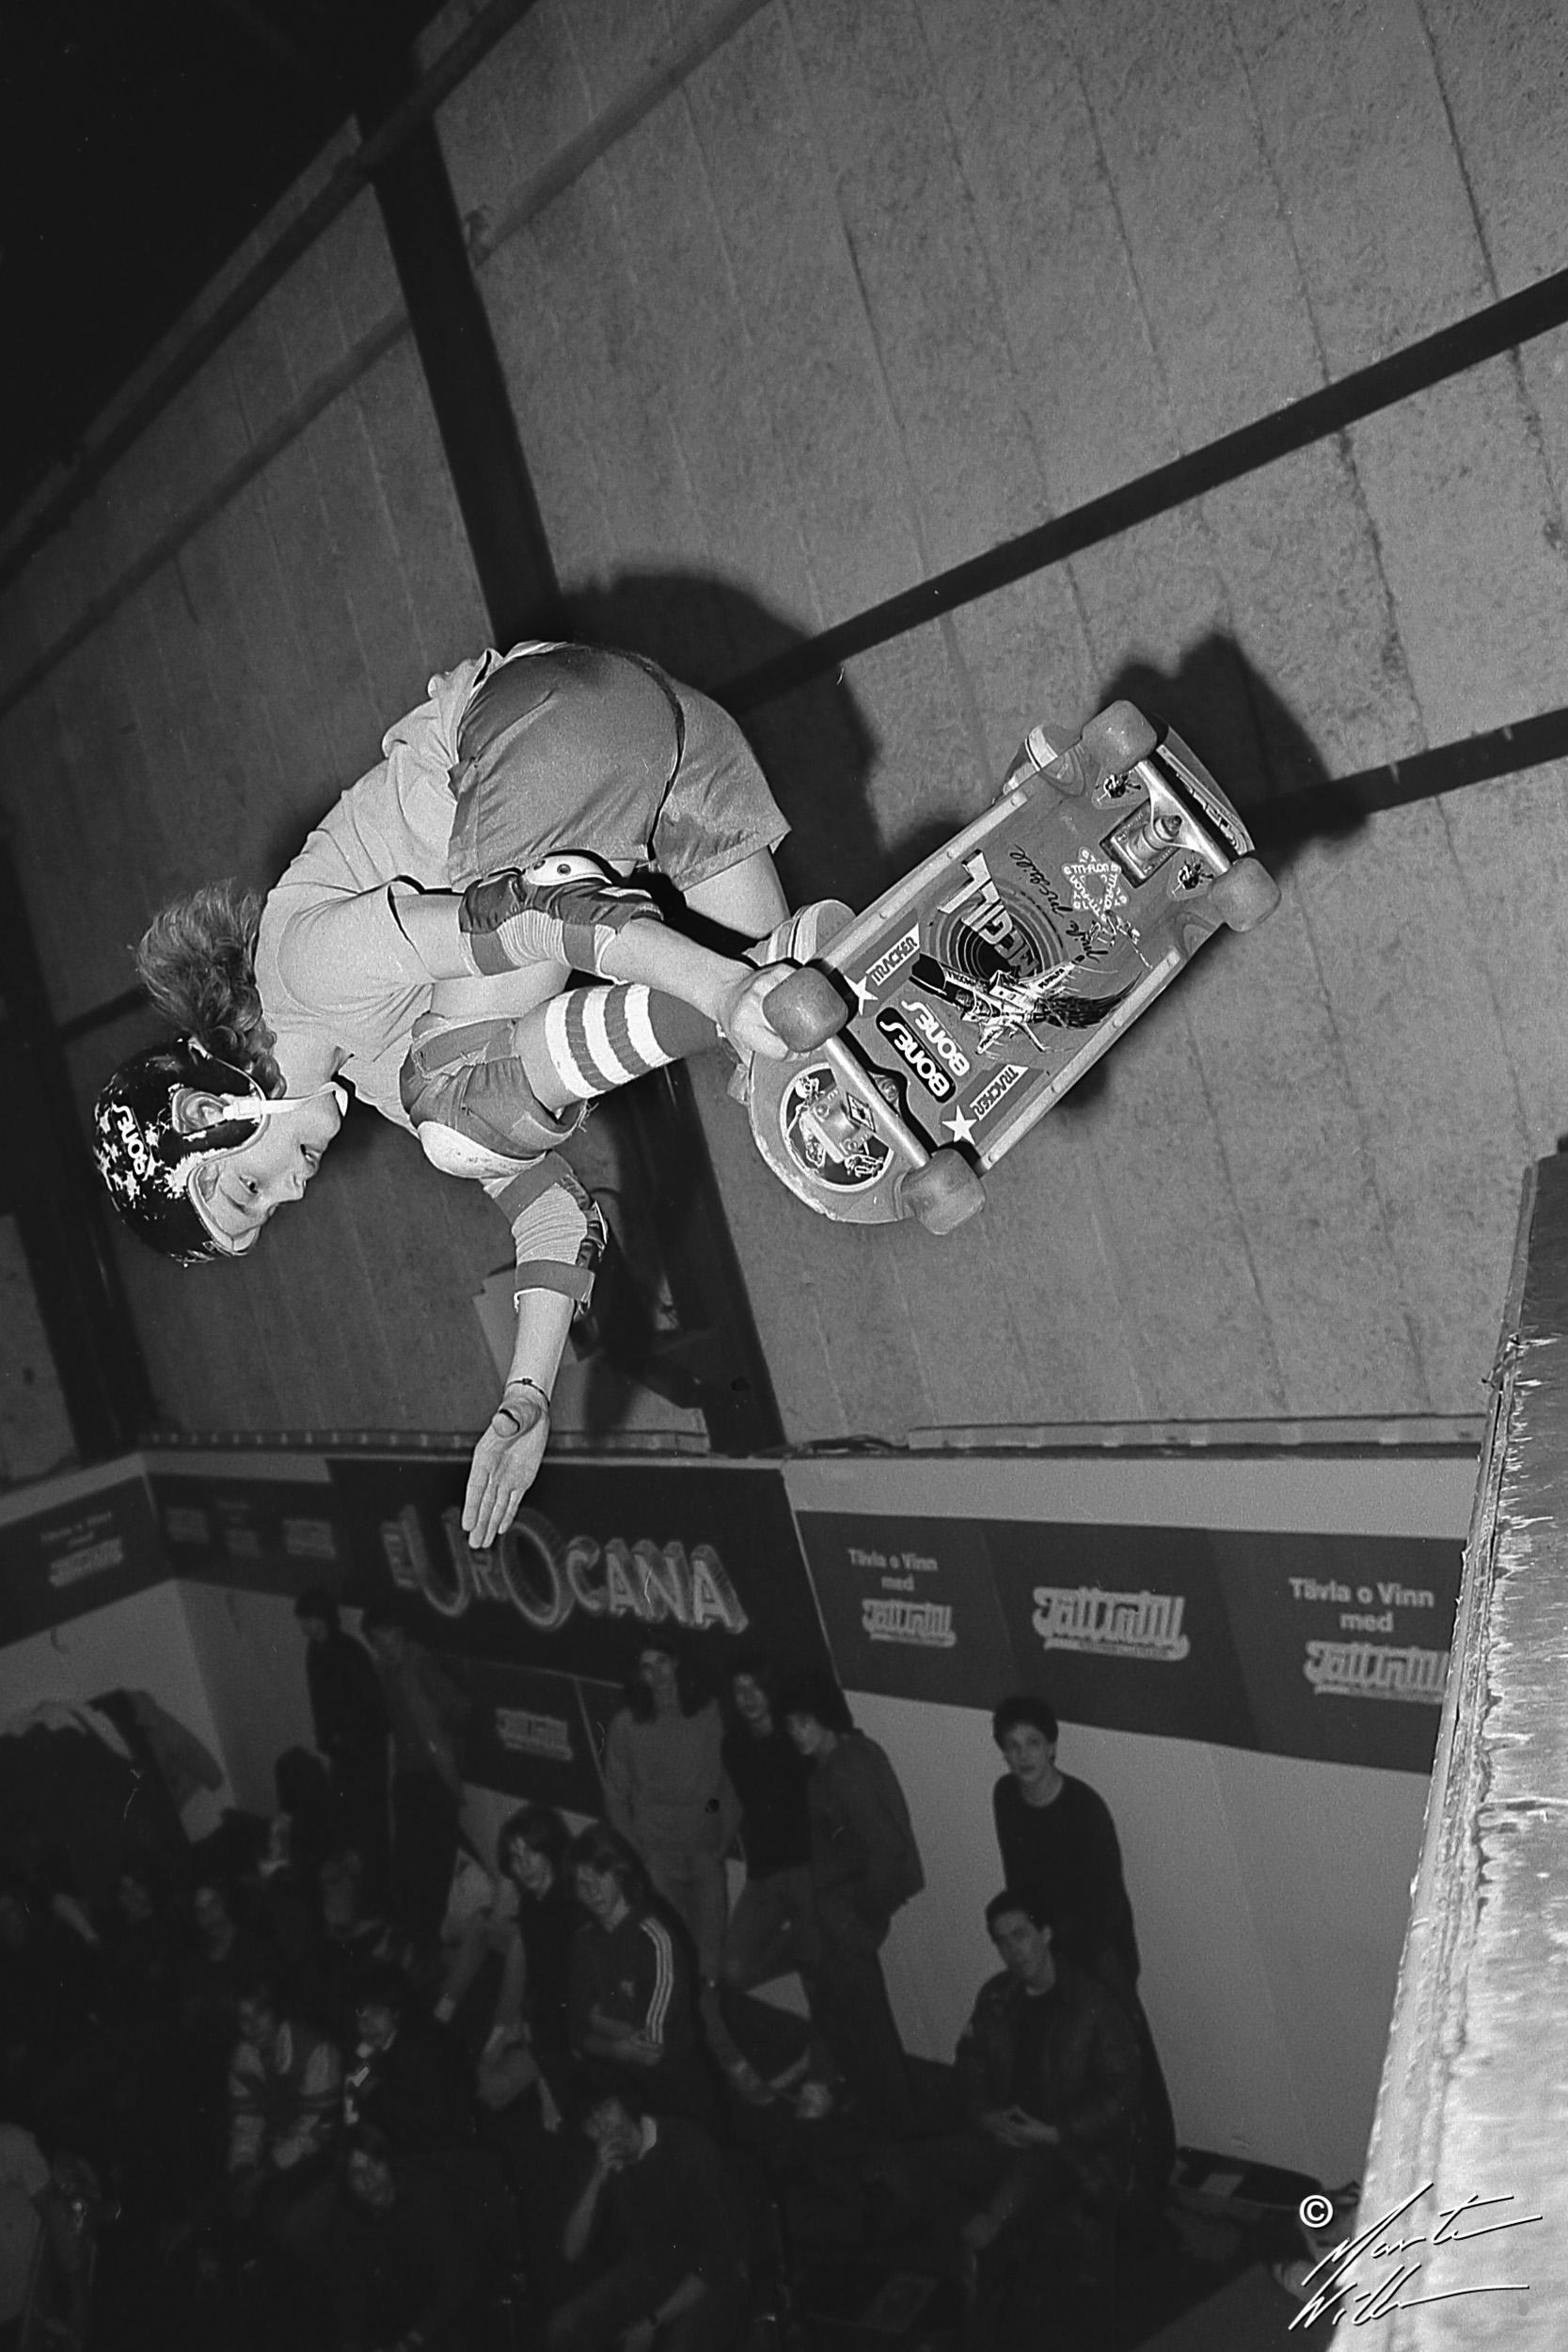 Anders Osborne, Backside air, Eurocana Open, Stockholm 1982